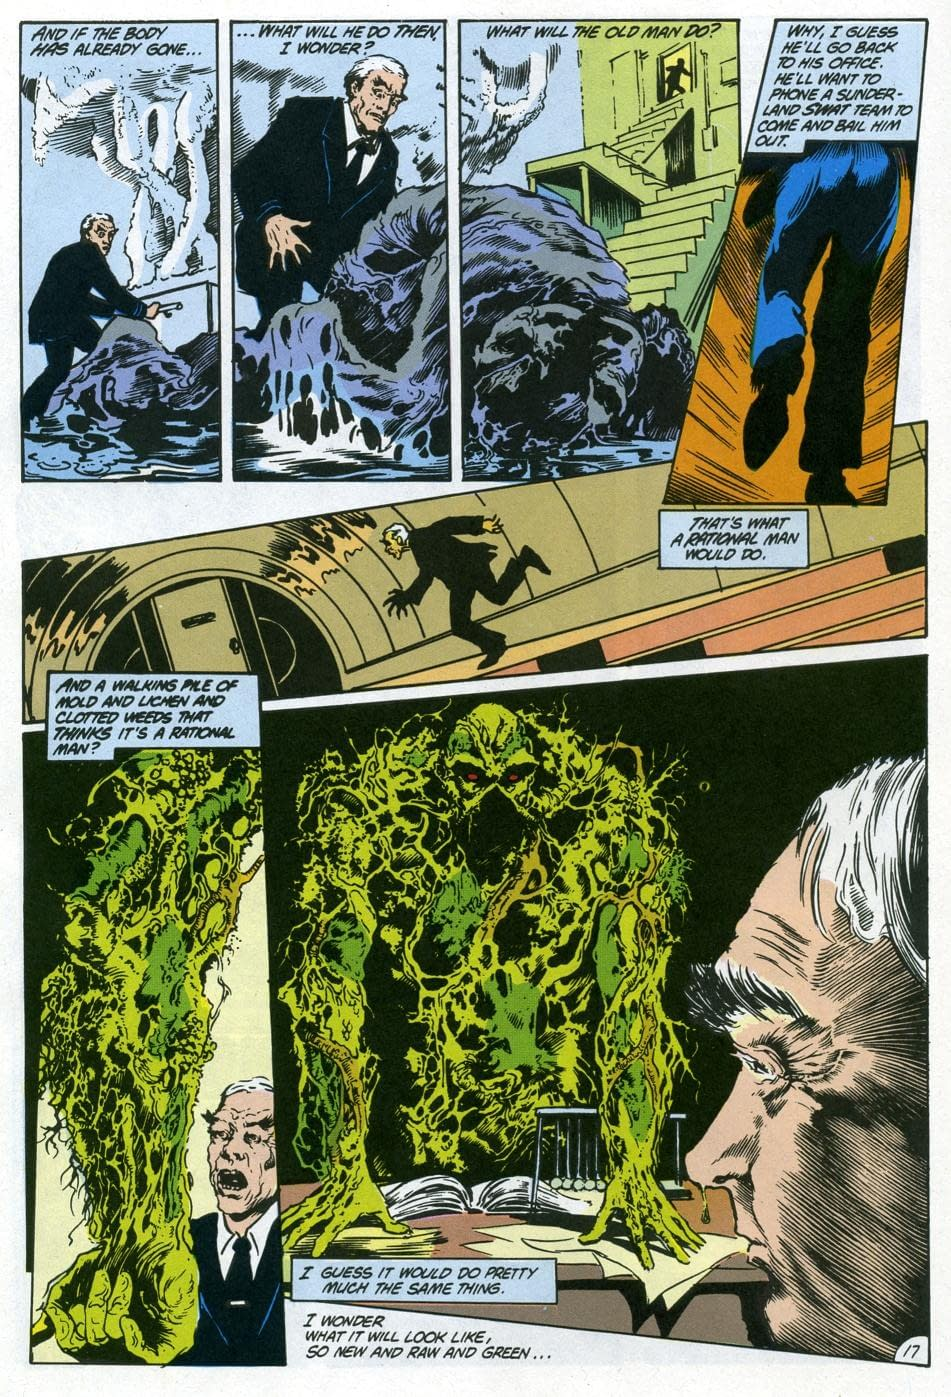 """Swamp Thing"" Learns Nothing from Alan Moore's ""Anatomy Lesson"" [OPINION]"